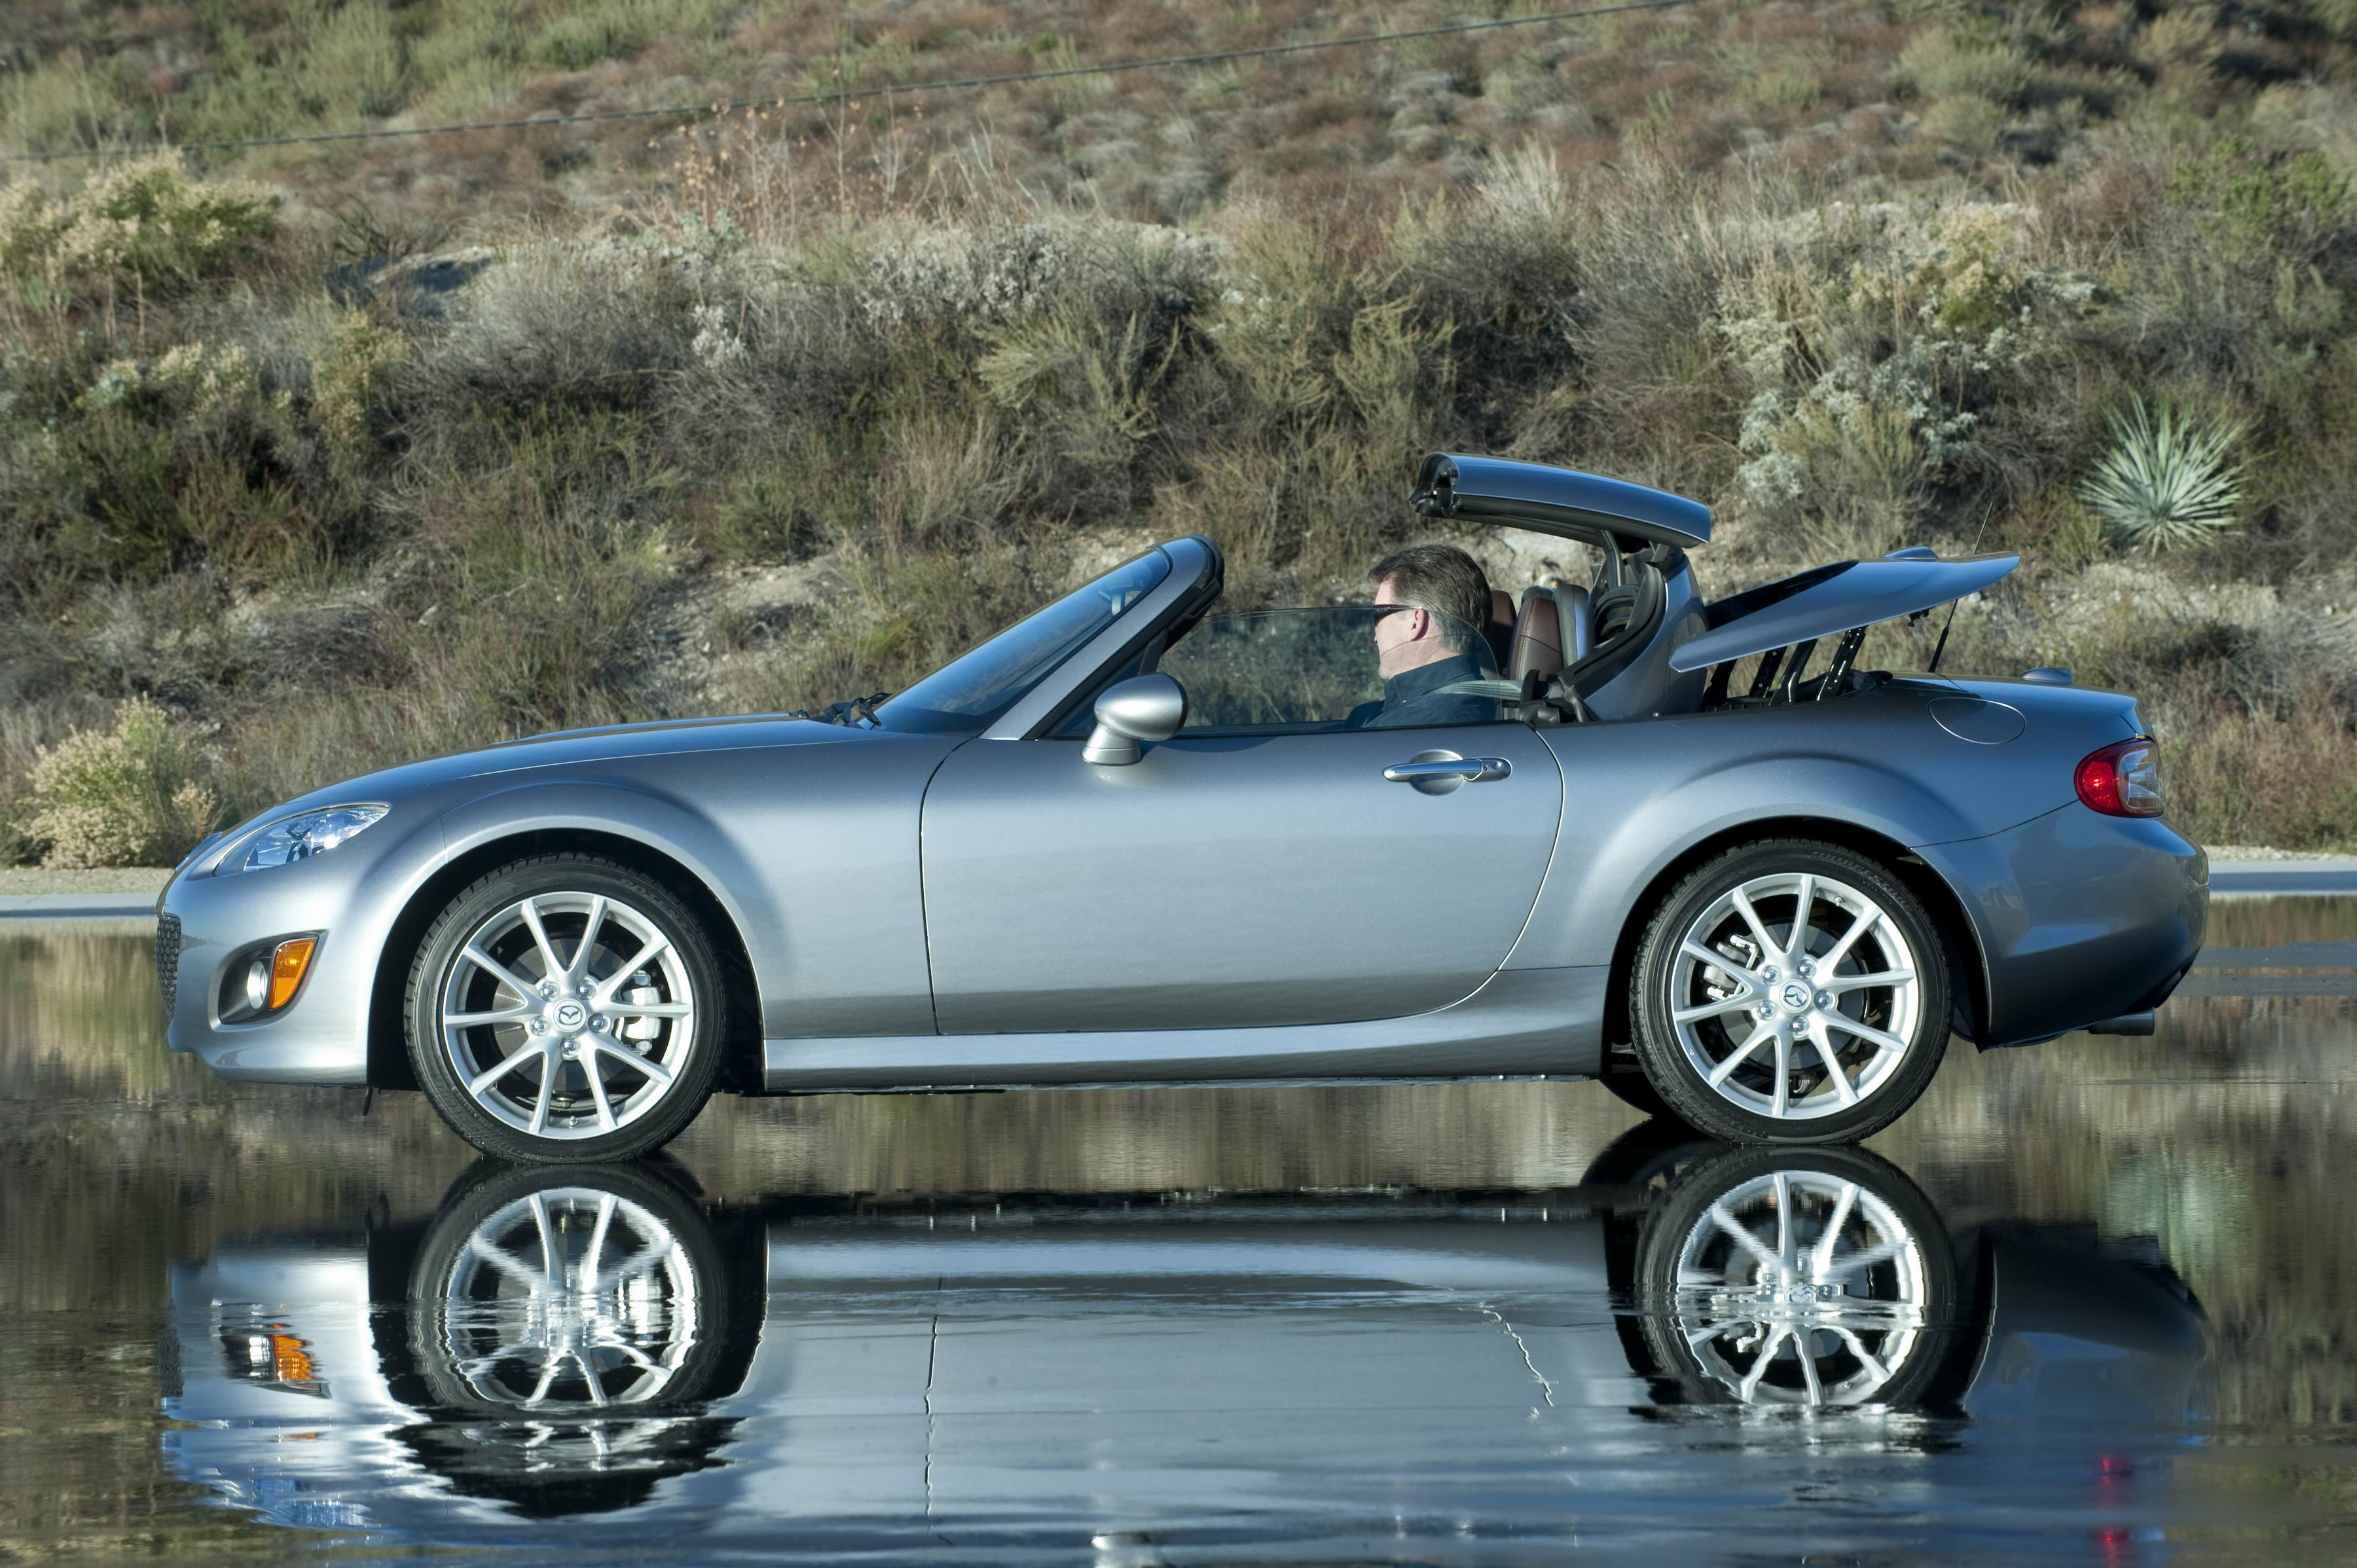 Top 5 Small Convertibles For This Summer